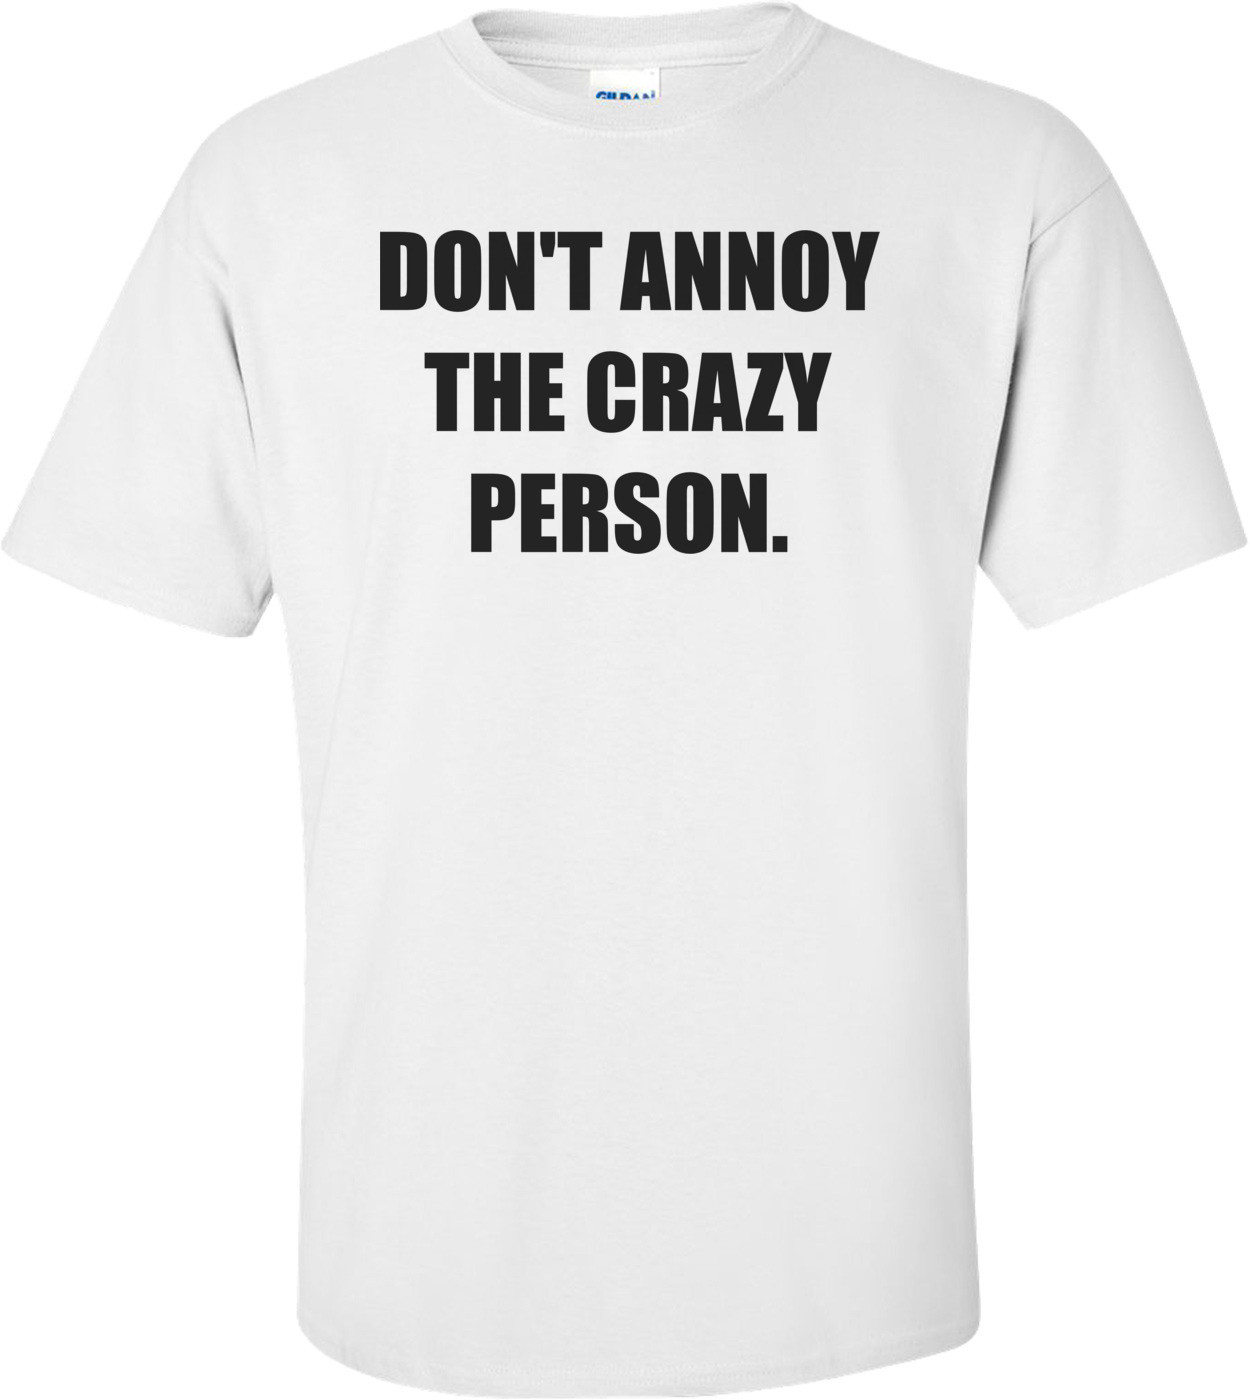 DON'T ANNOY THE CRAZY PERSON. Shirt